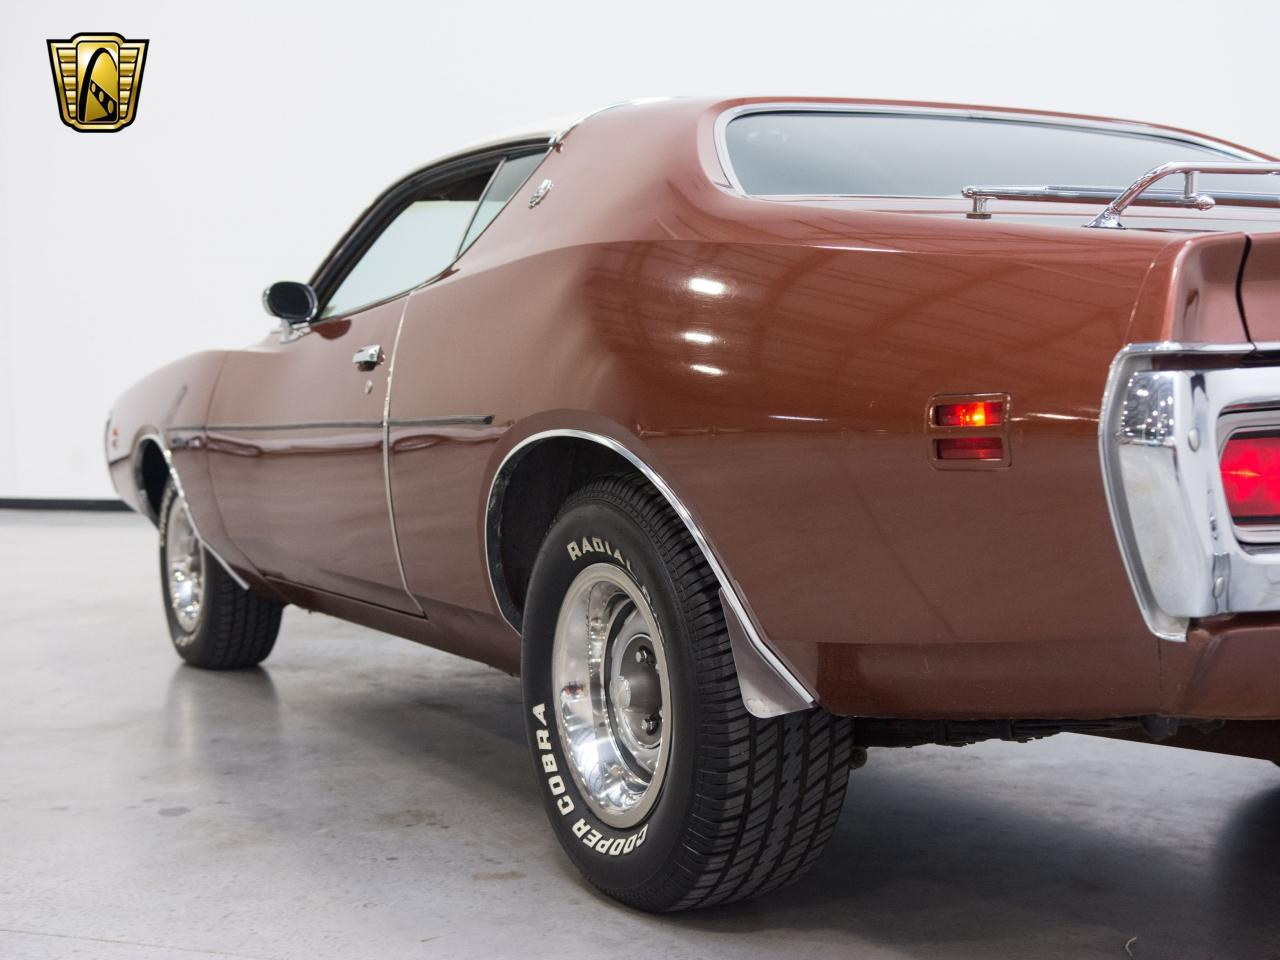 Large Picture of Classic '71 Dodge Charger located in Kenosha Wisconsin - $29,995.00 - KEDX